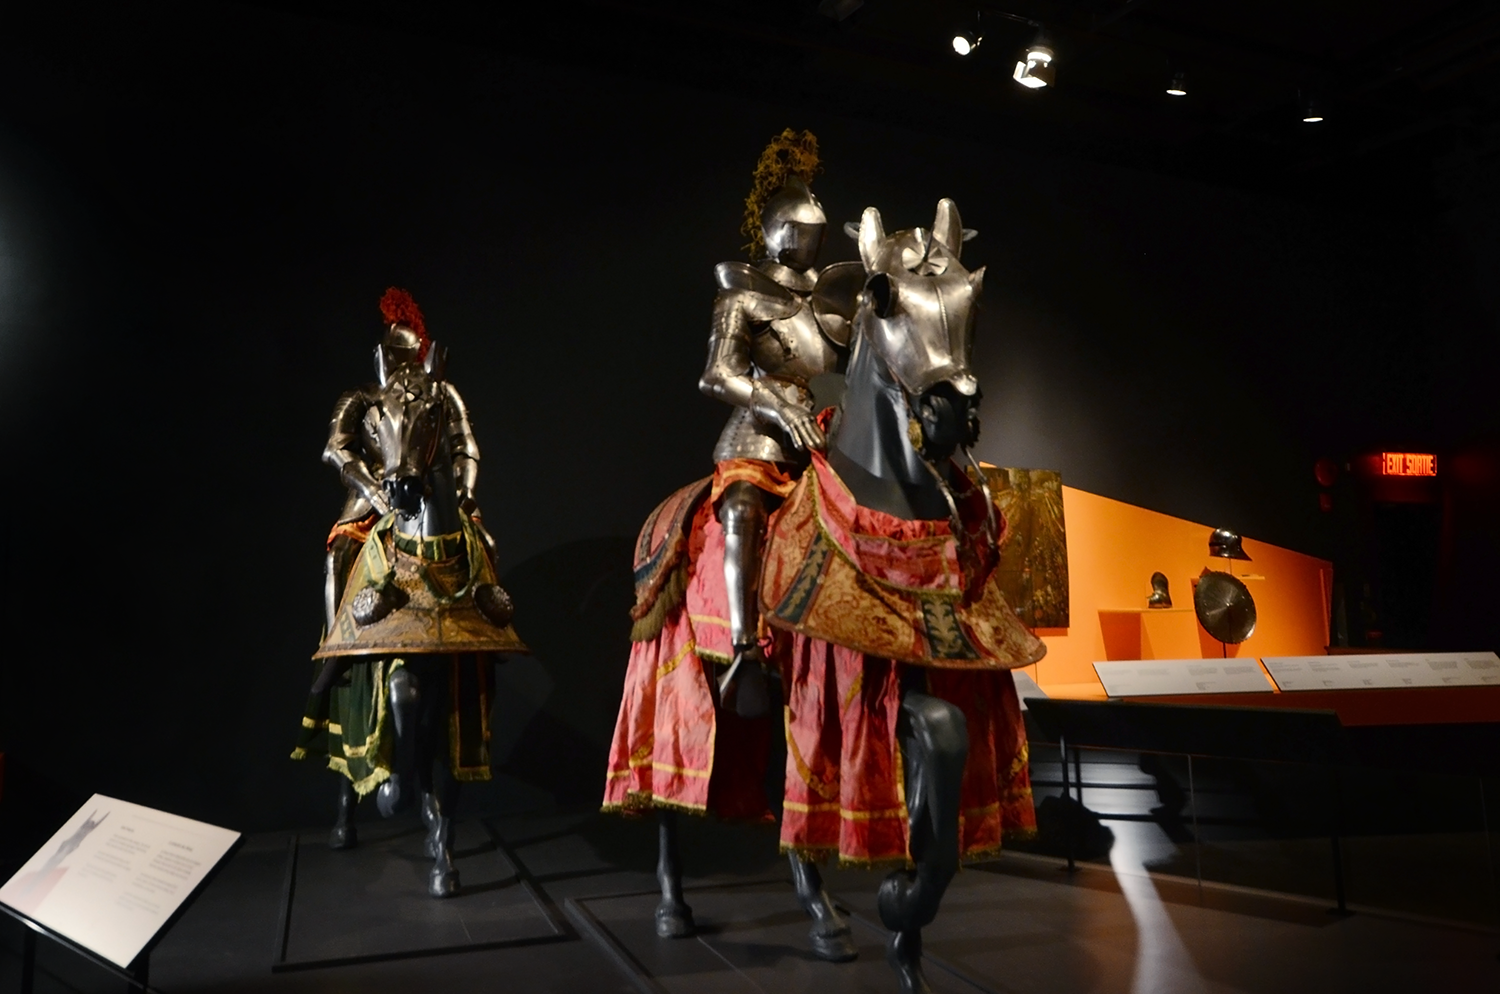 Museum display featuring two life-size knights in full body armour on horseback